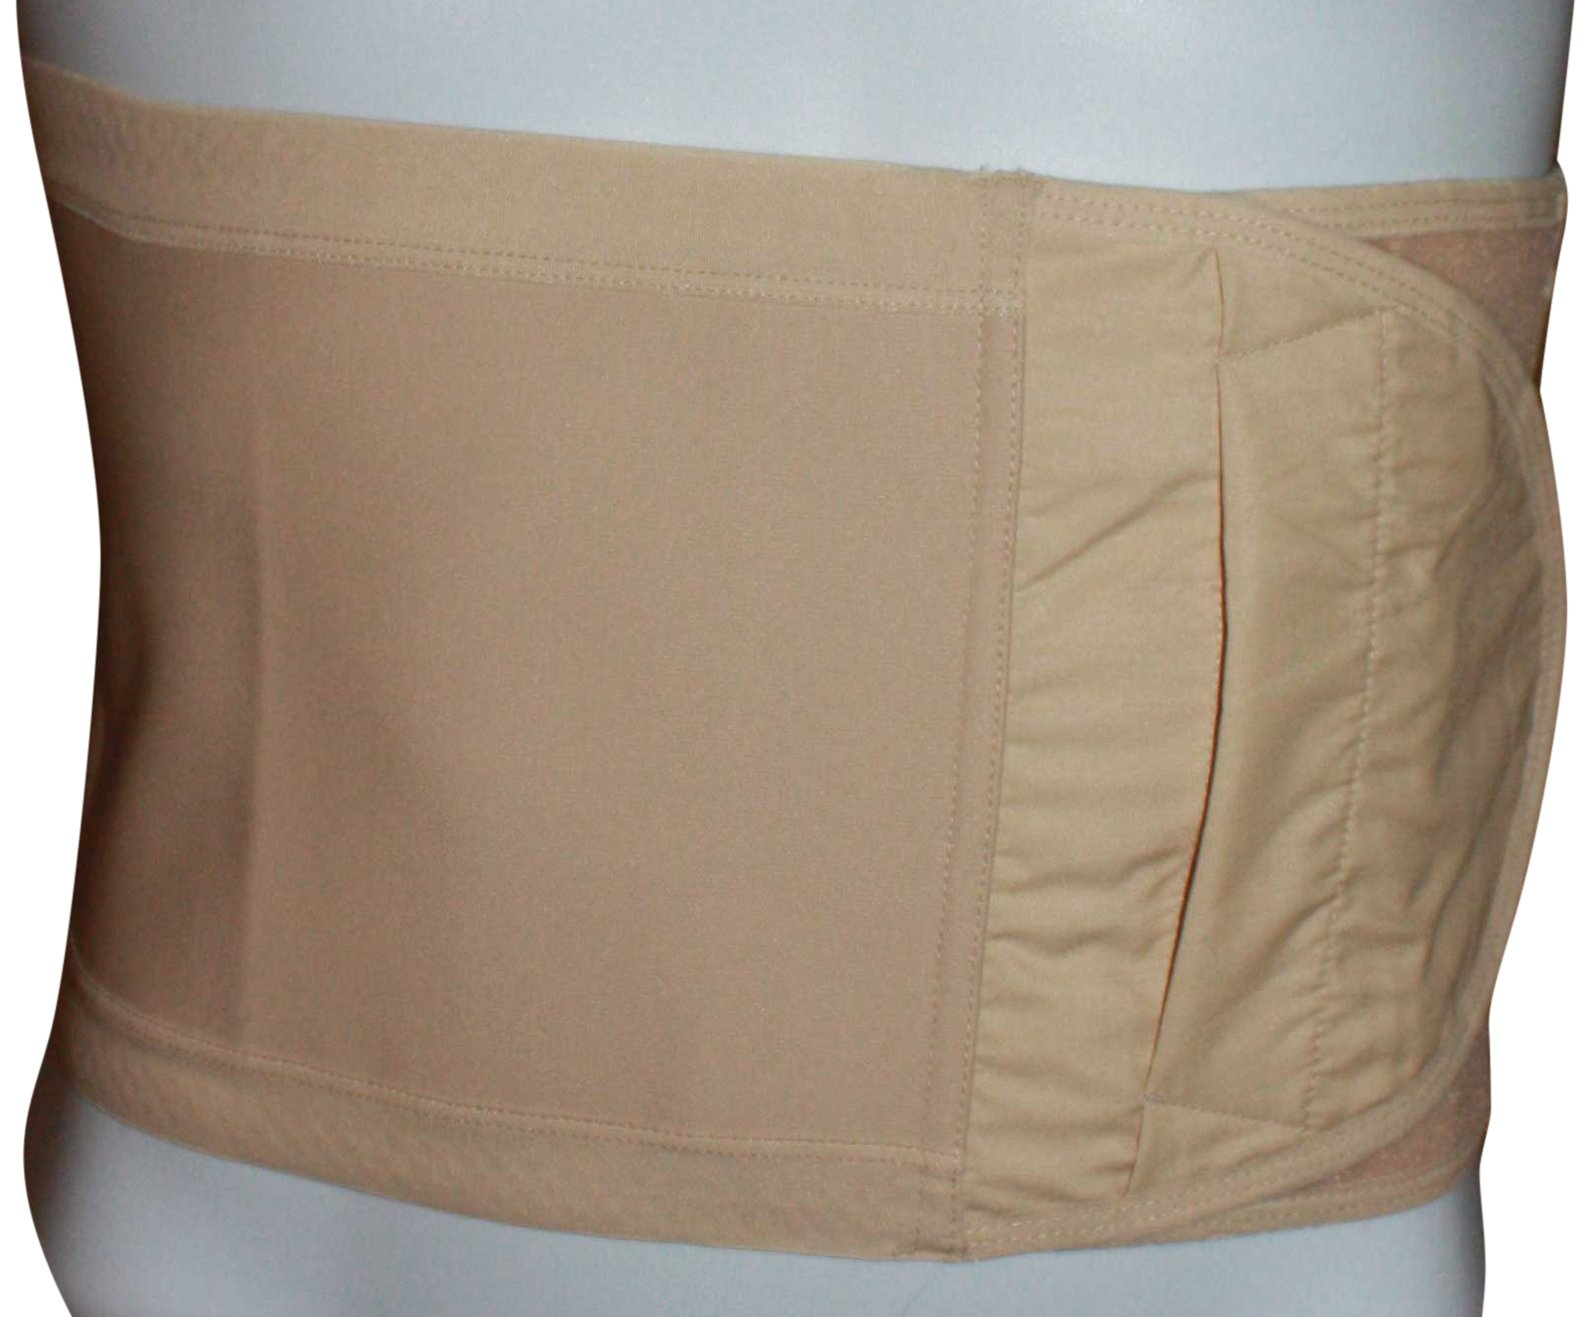 Safe n' Simple Hernia Support Belt, 20cm, Beige, Small by Safe n' Simple